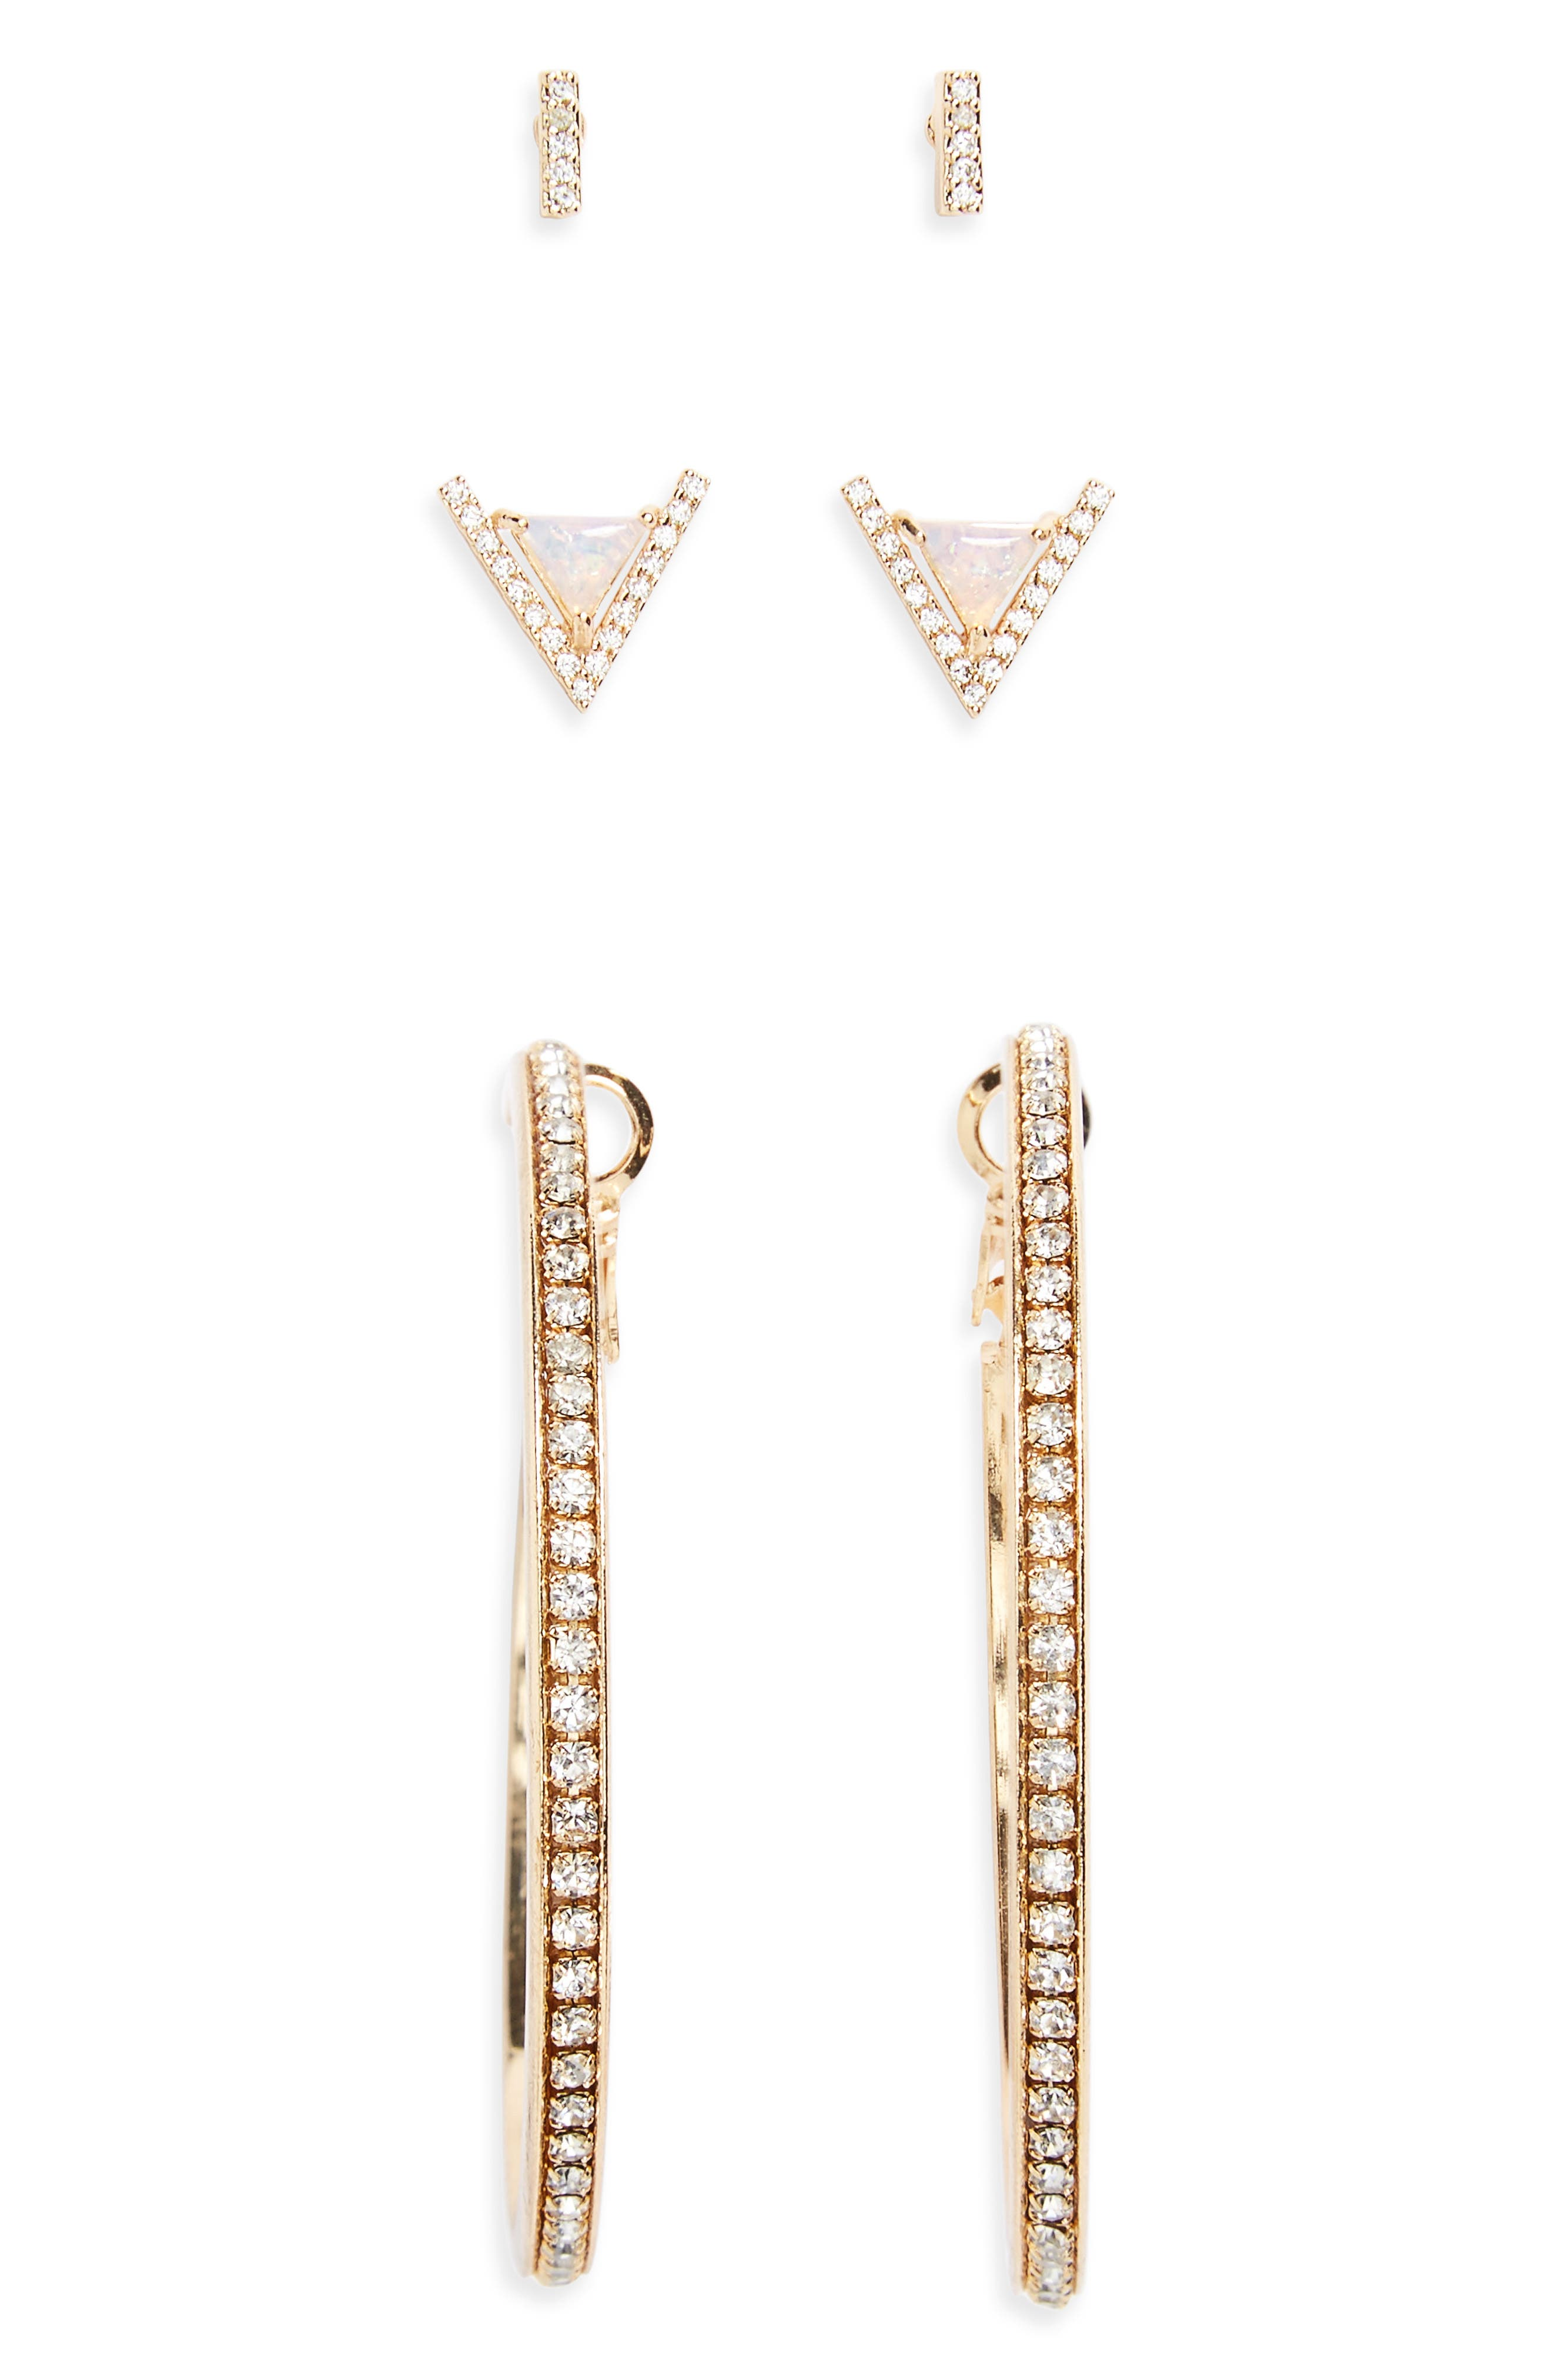 Crystal & Faux Opal 3-Pack Earrings,                         Main,                         color, Gold